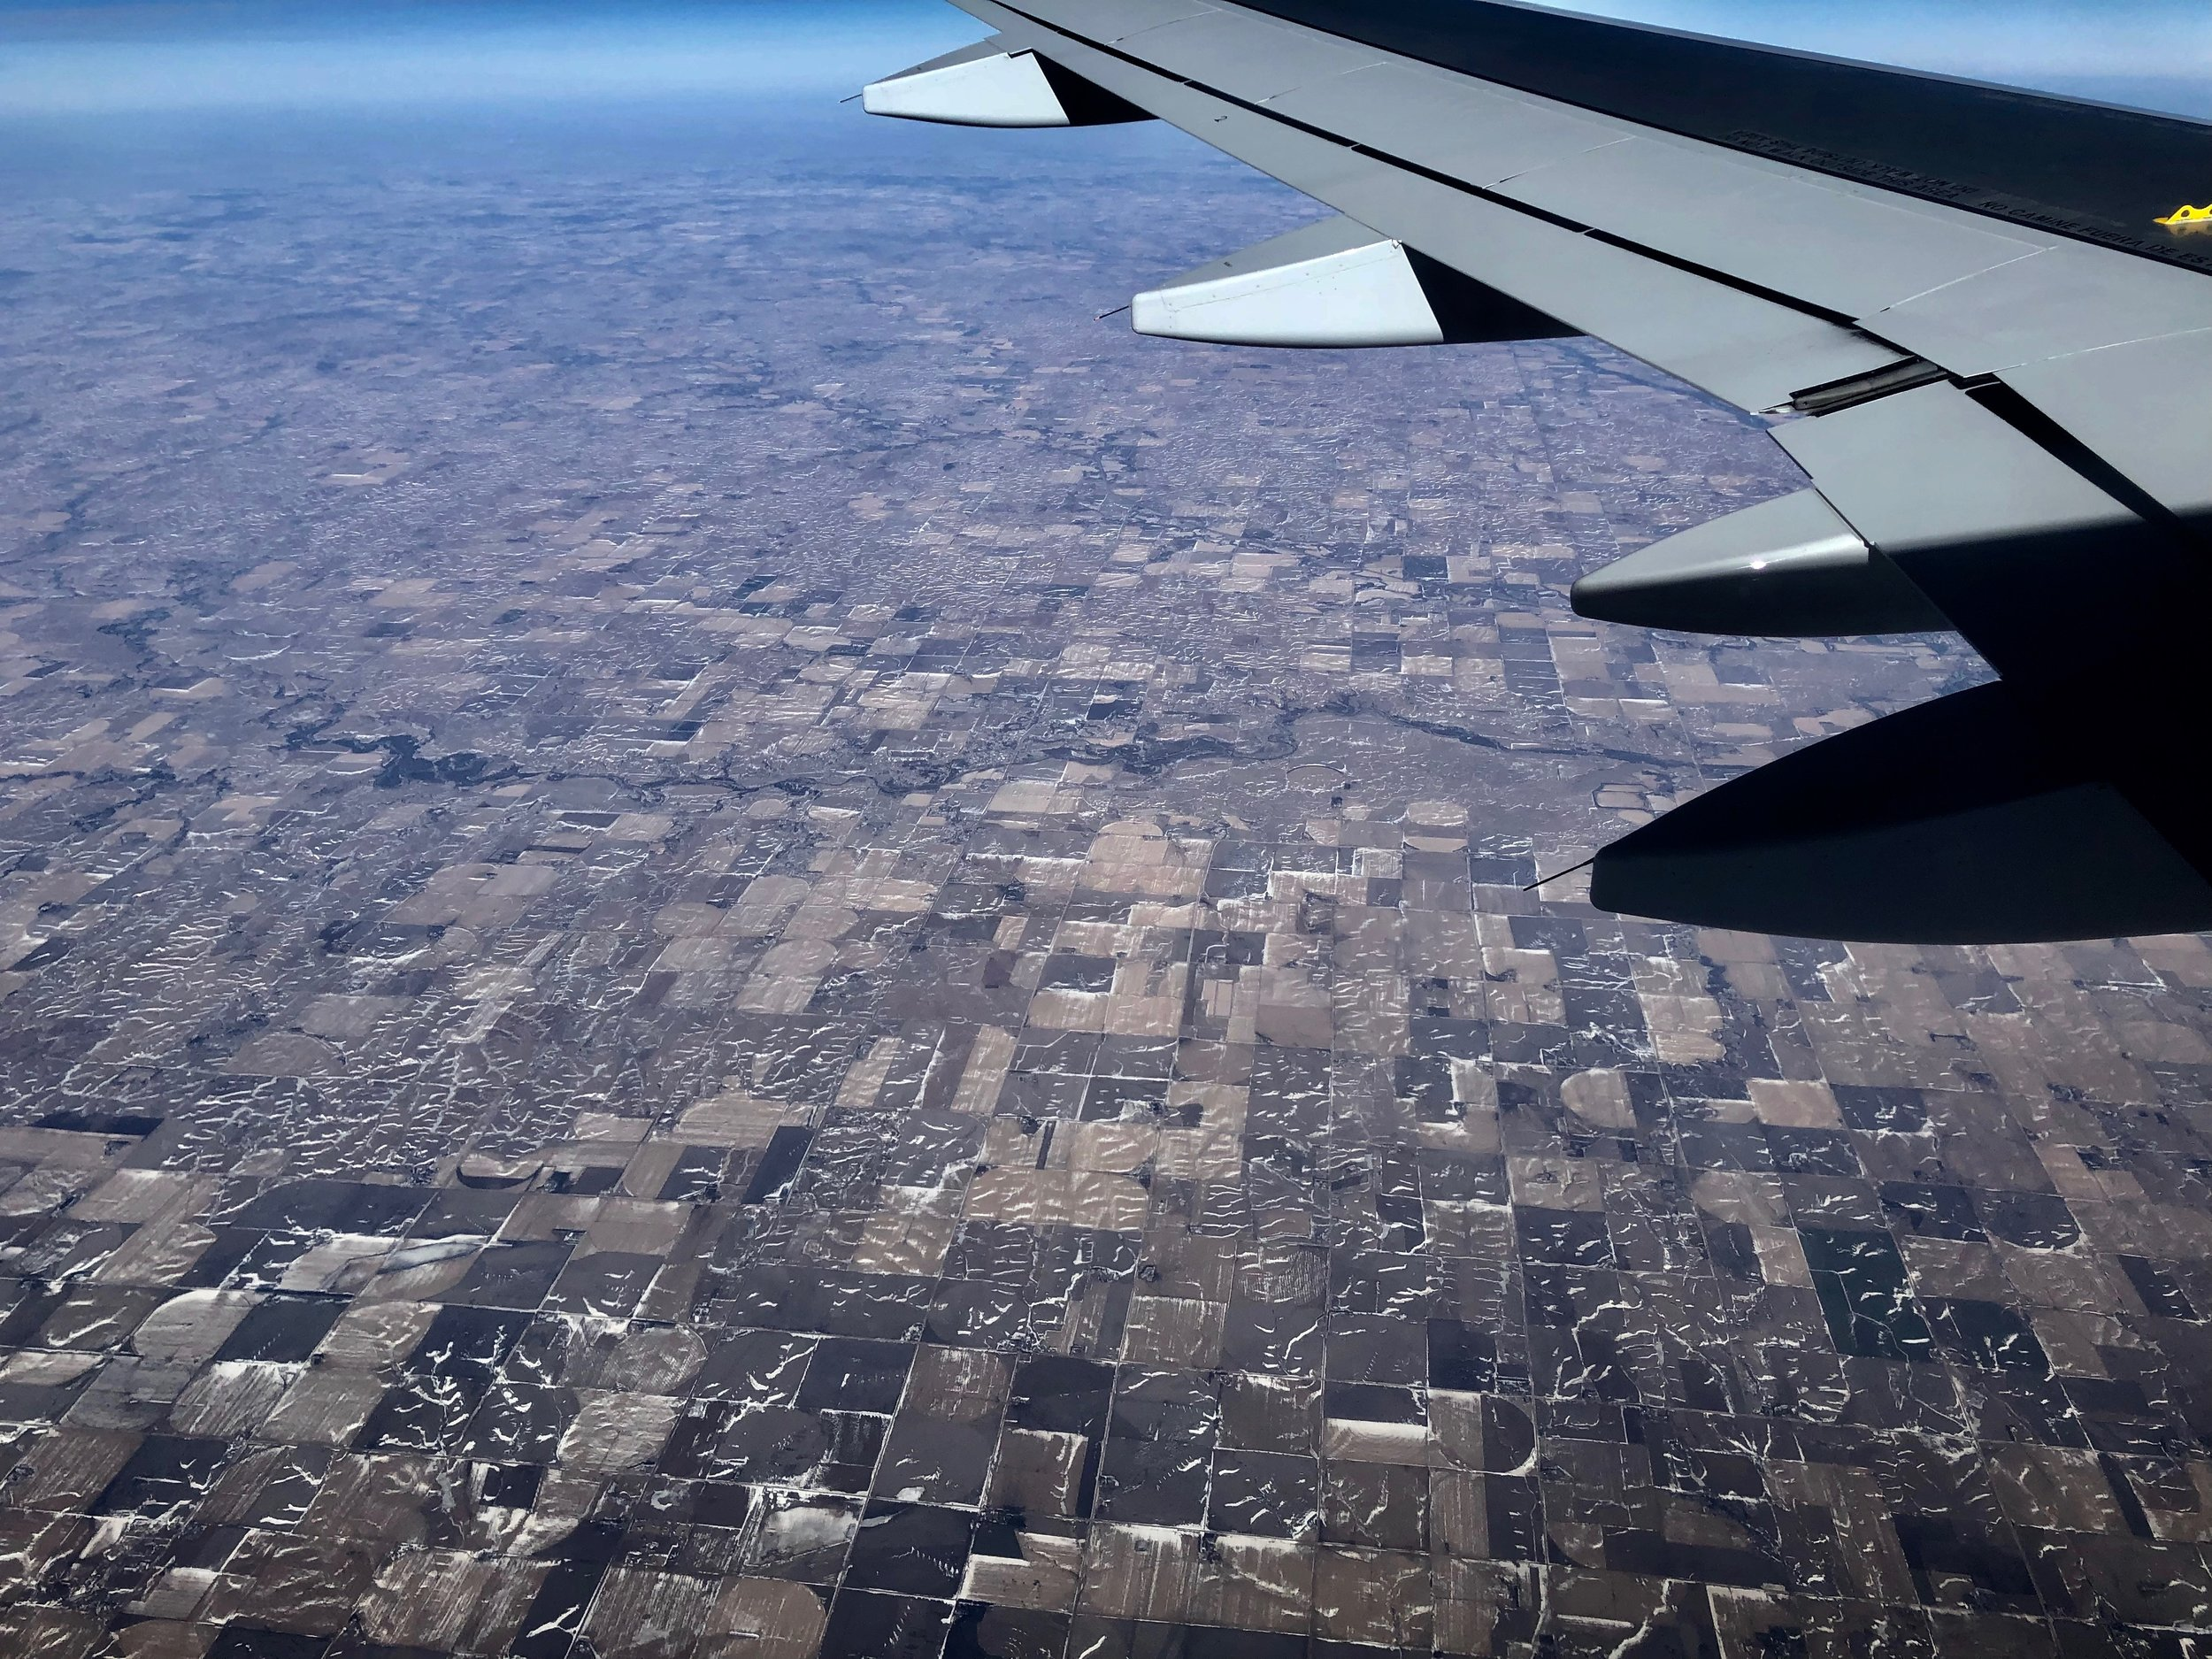 The round irrigation fields turn to rectangular grids as we head east across the US.